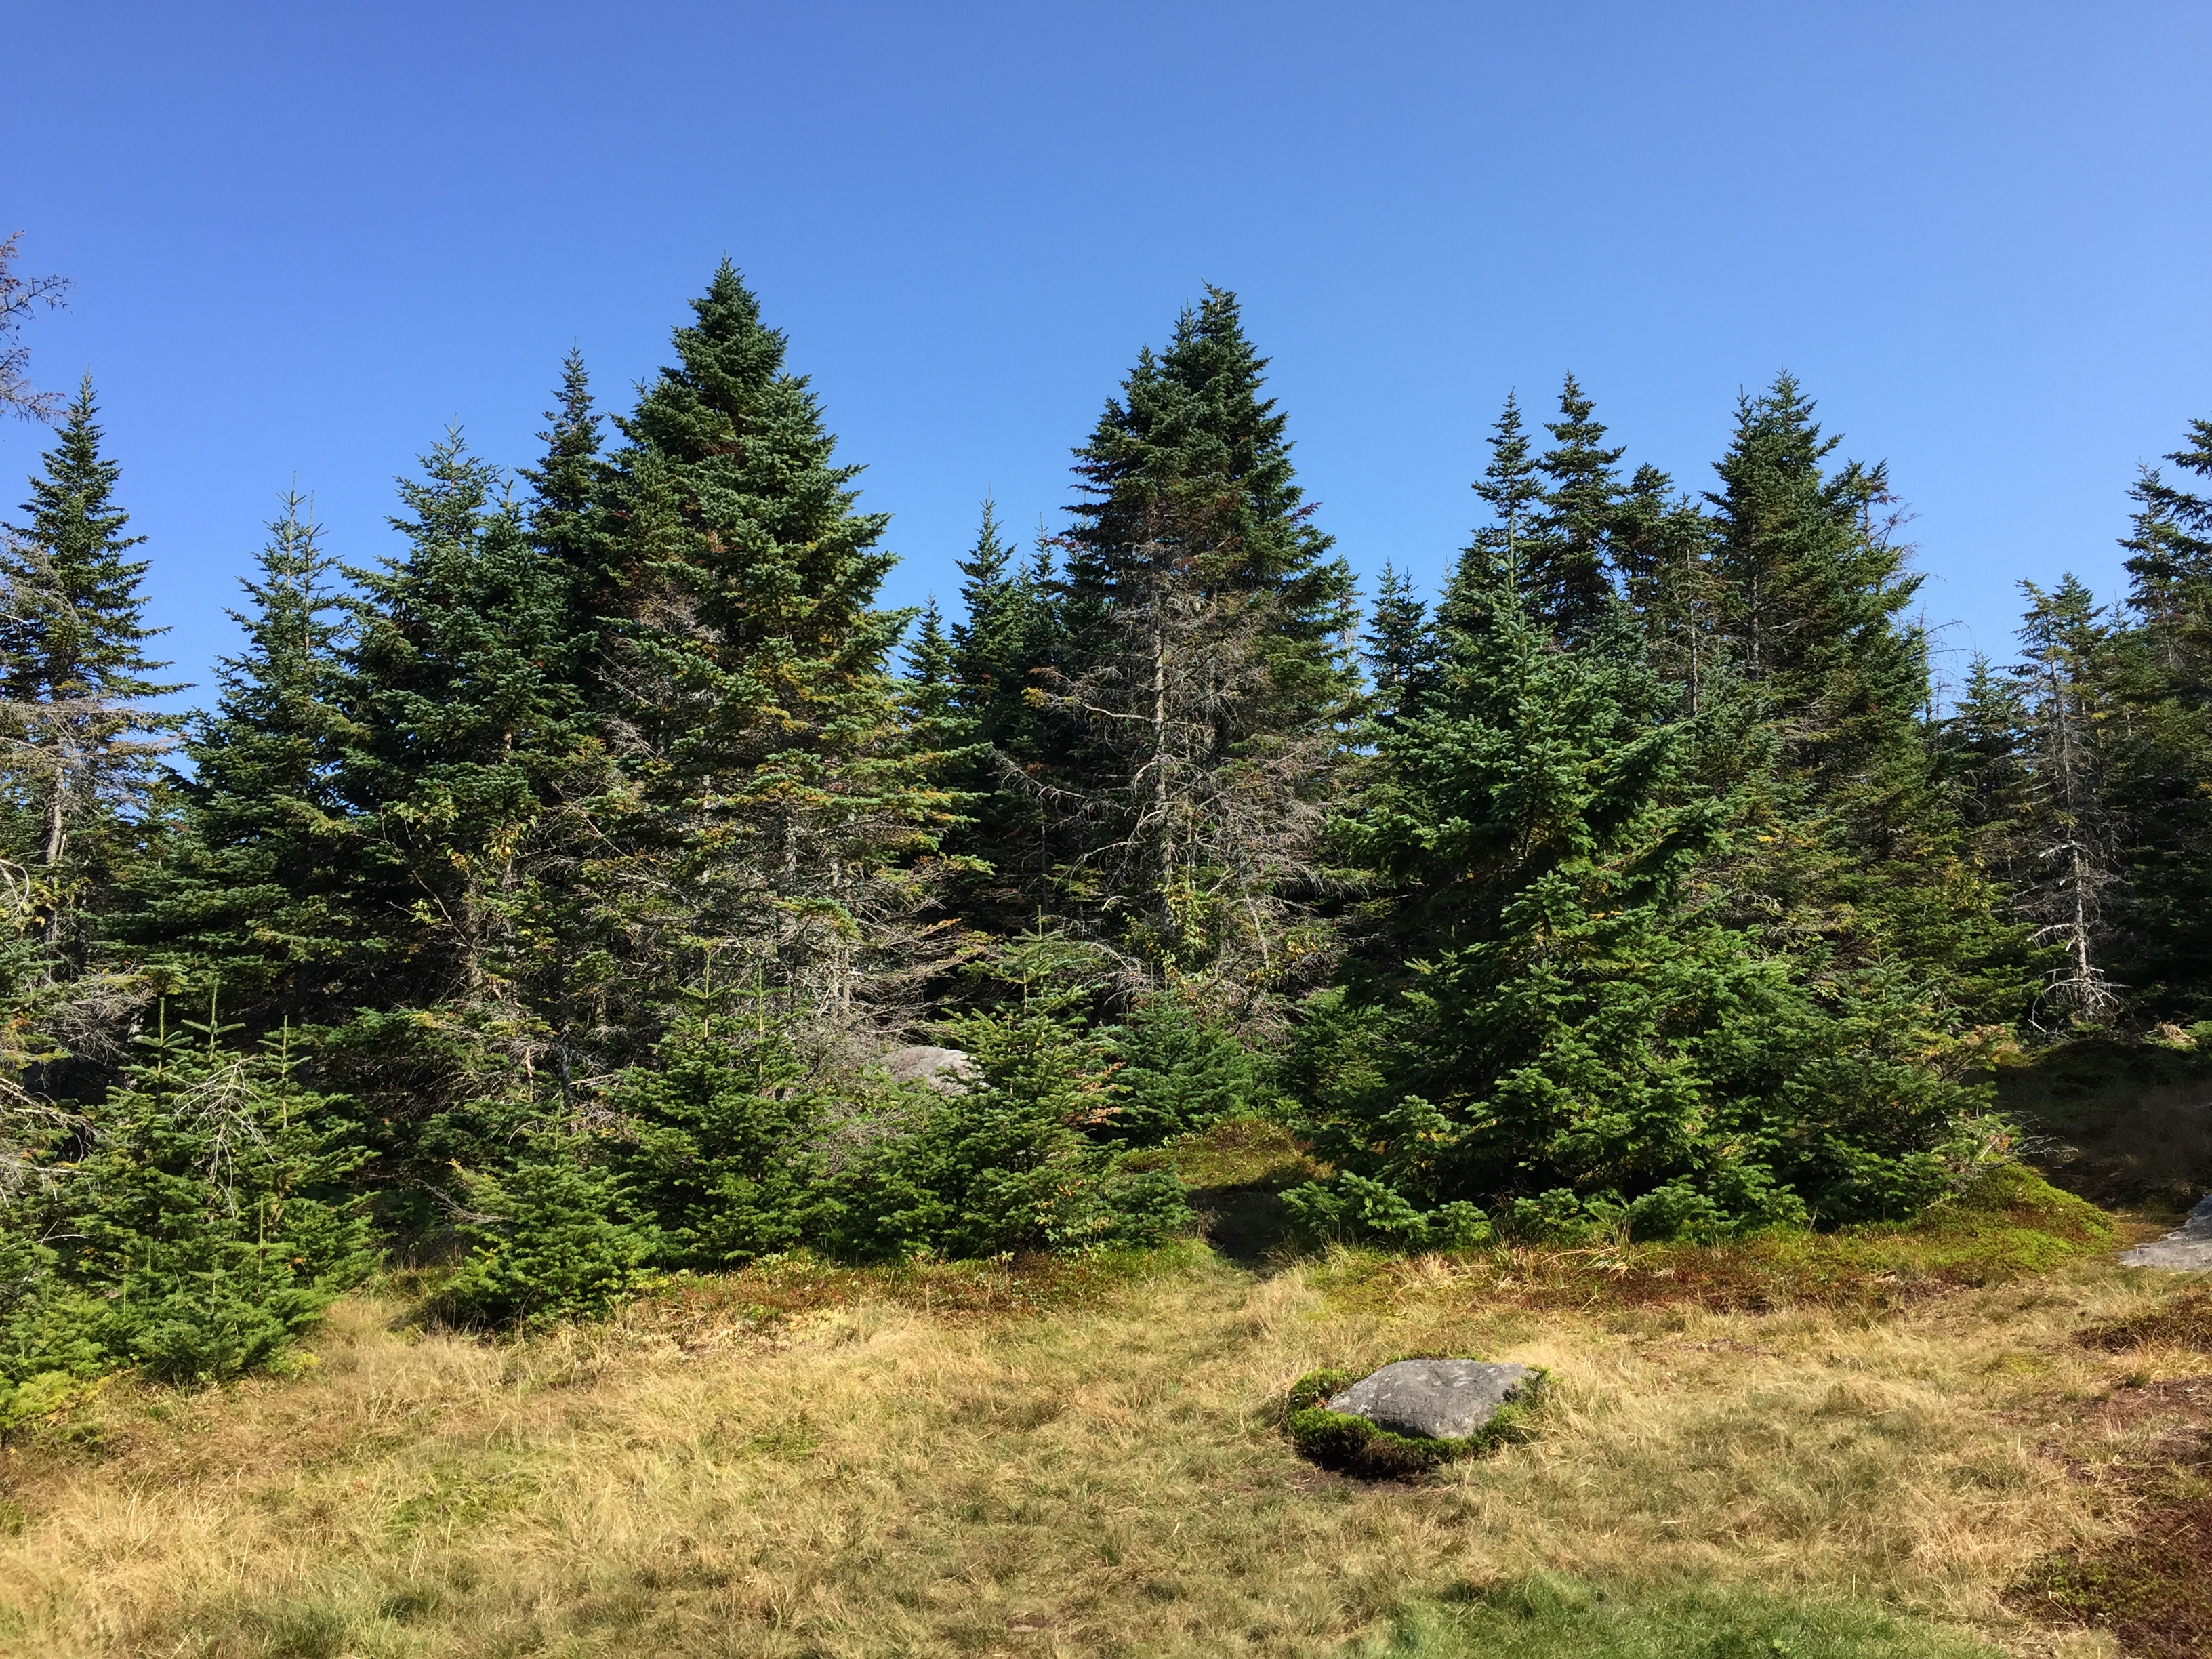 New york essex county keene - File 2016 09 04 10 46 15 Forest Along The Van Hoevenberg Trail